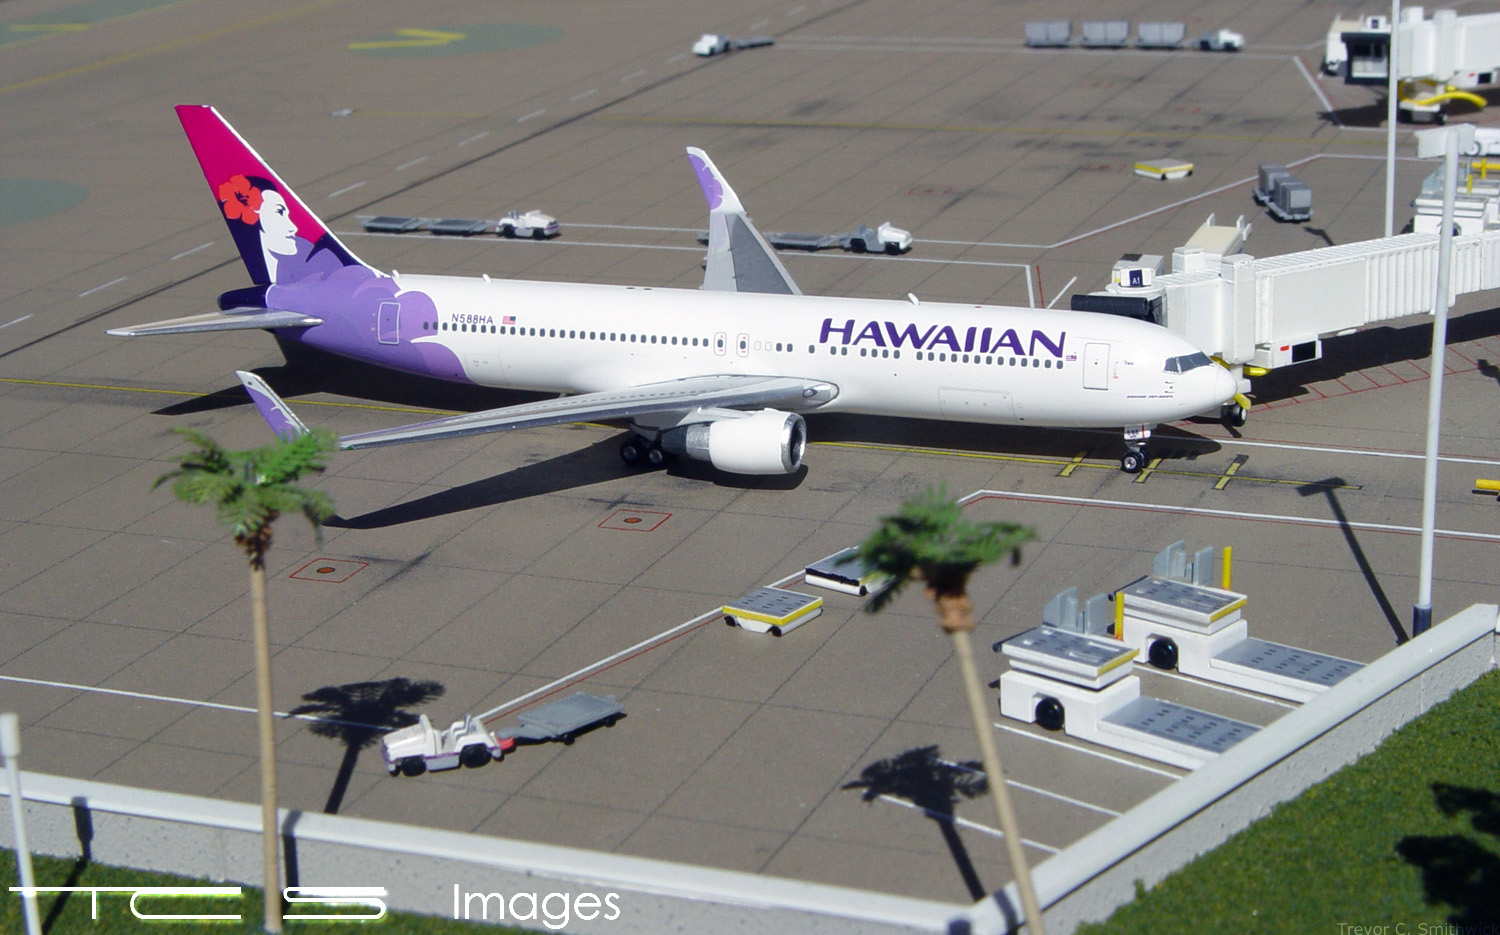 Hawaiian Airlines 767-300ER